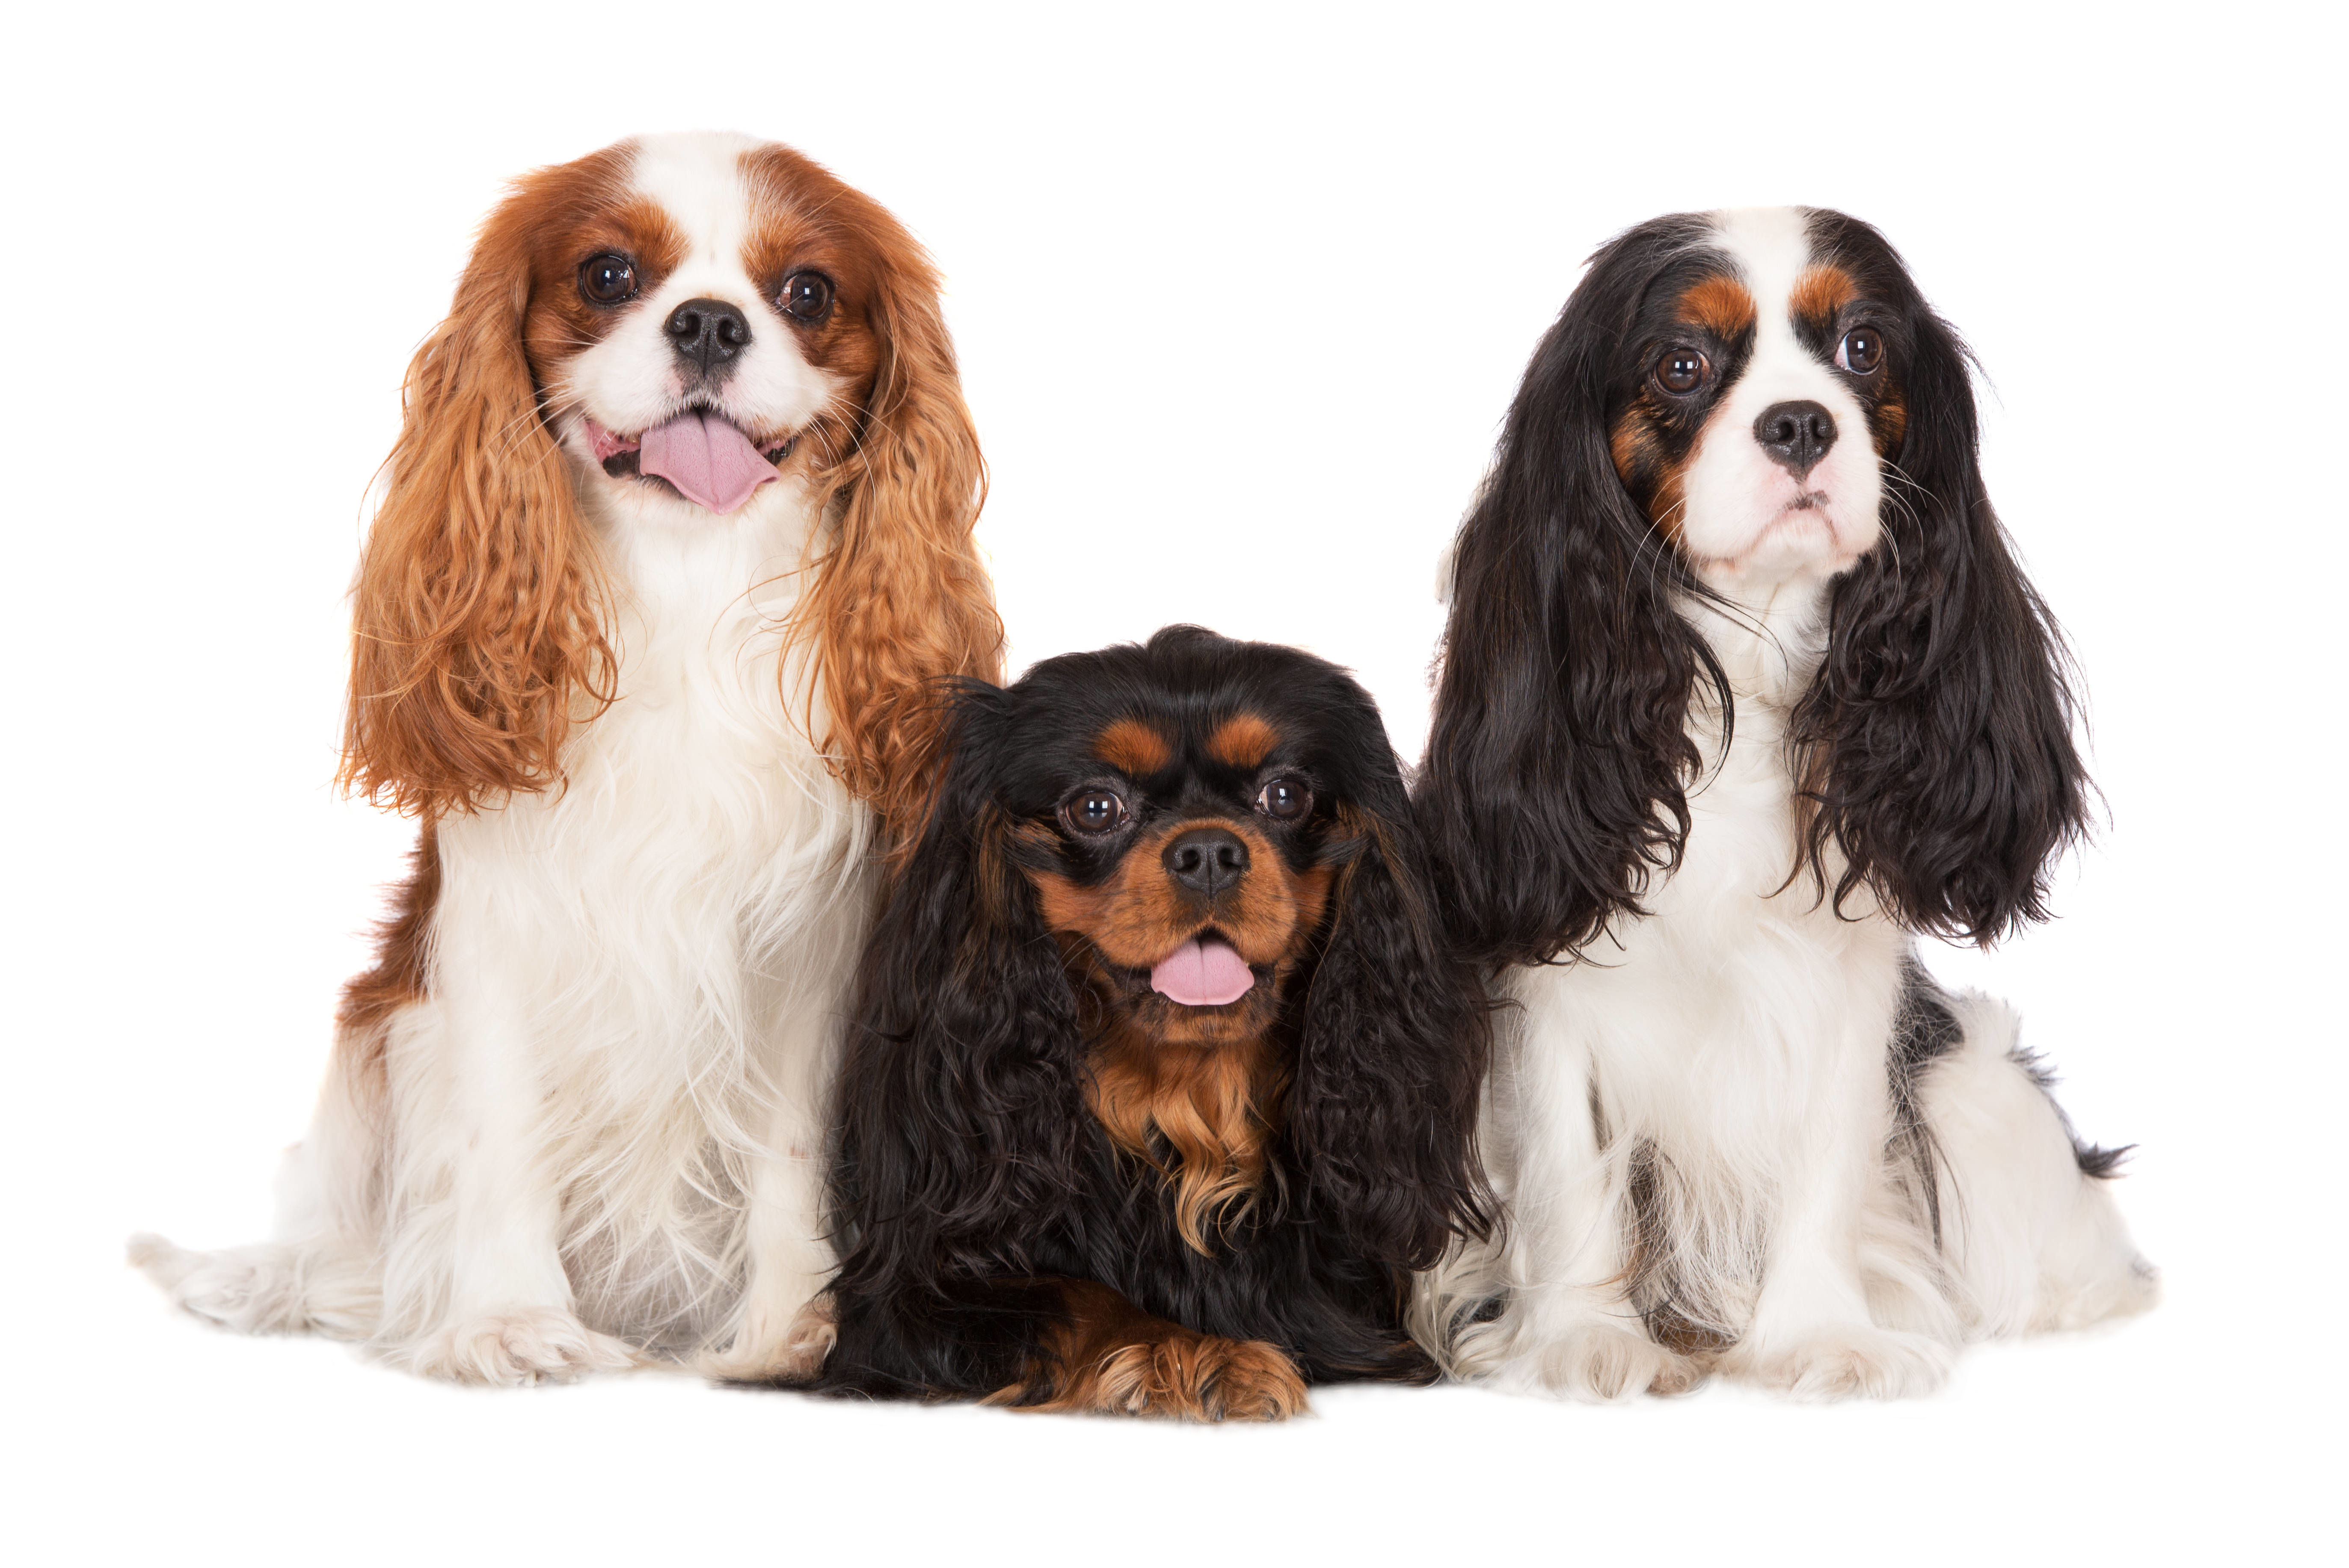 Three Cavalier King Charles Spaniels sitting in front of white background